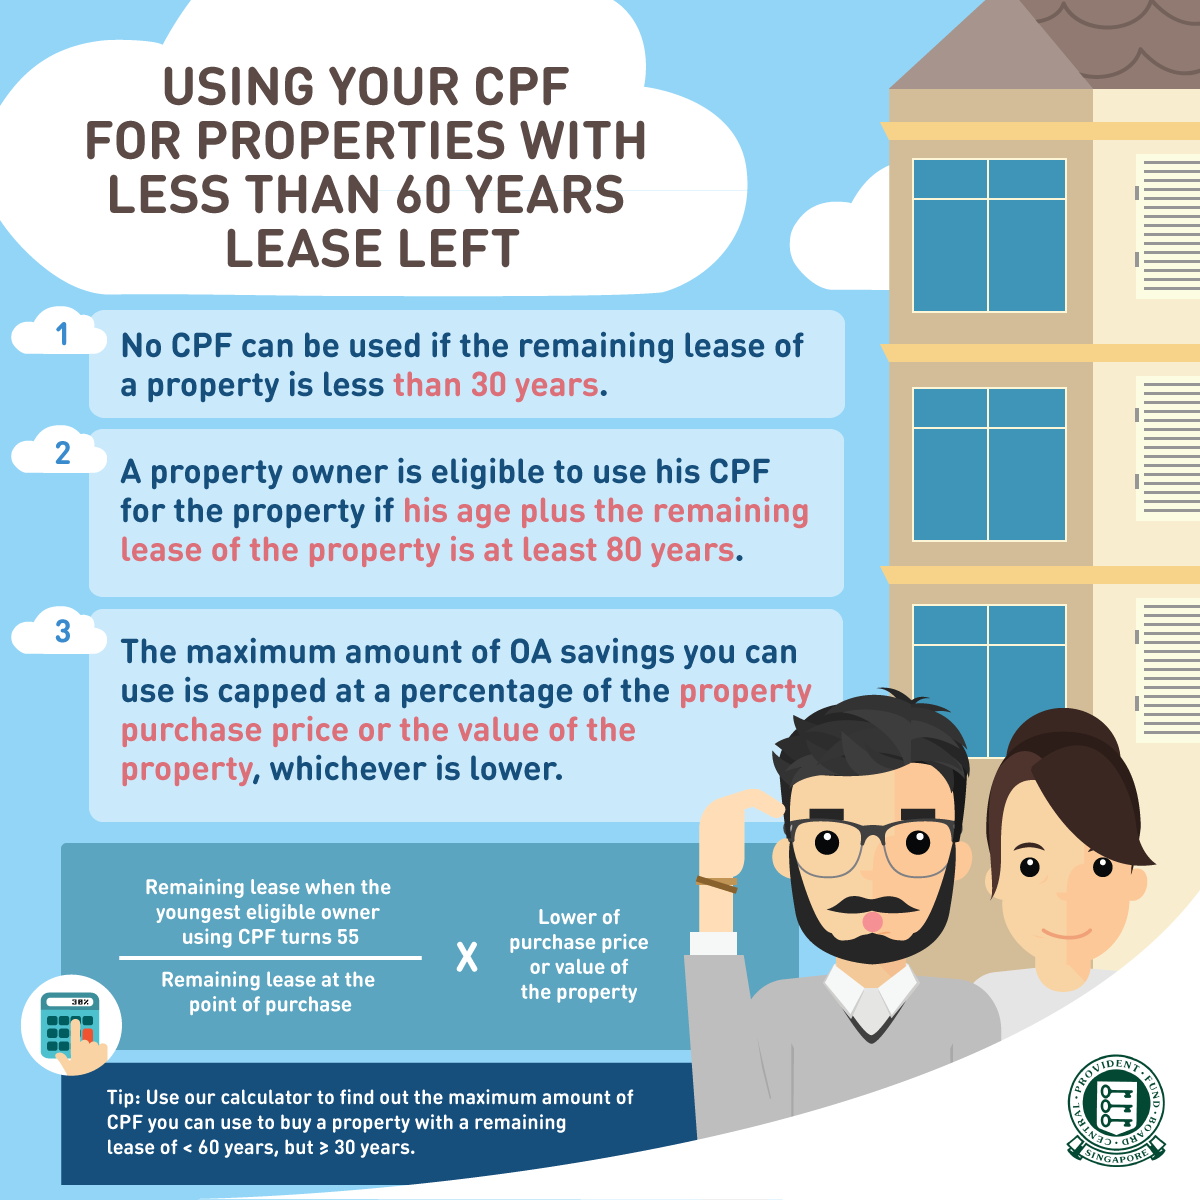 Resale Home Buying Guide - CPF restrictions